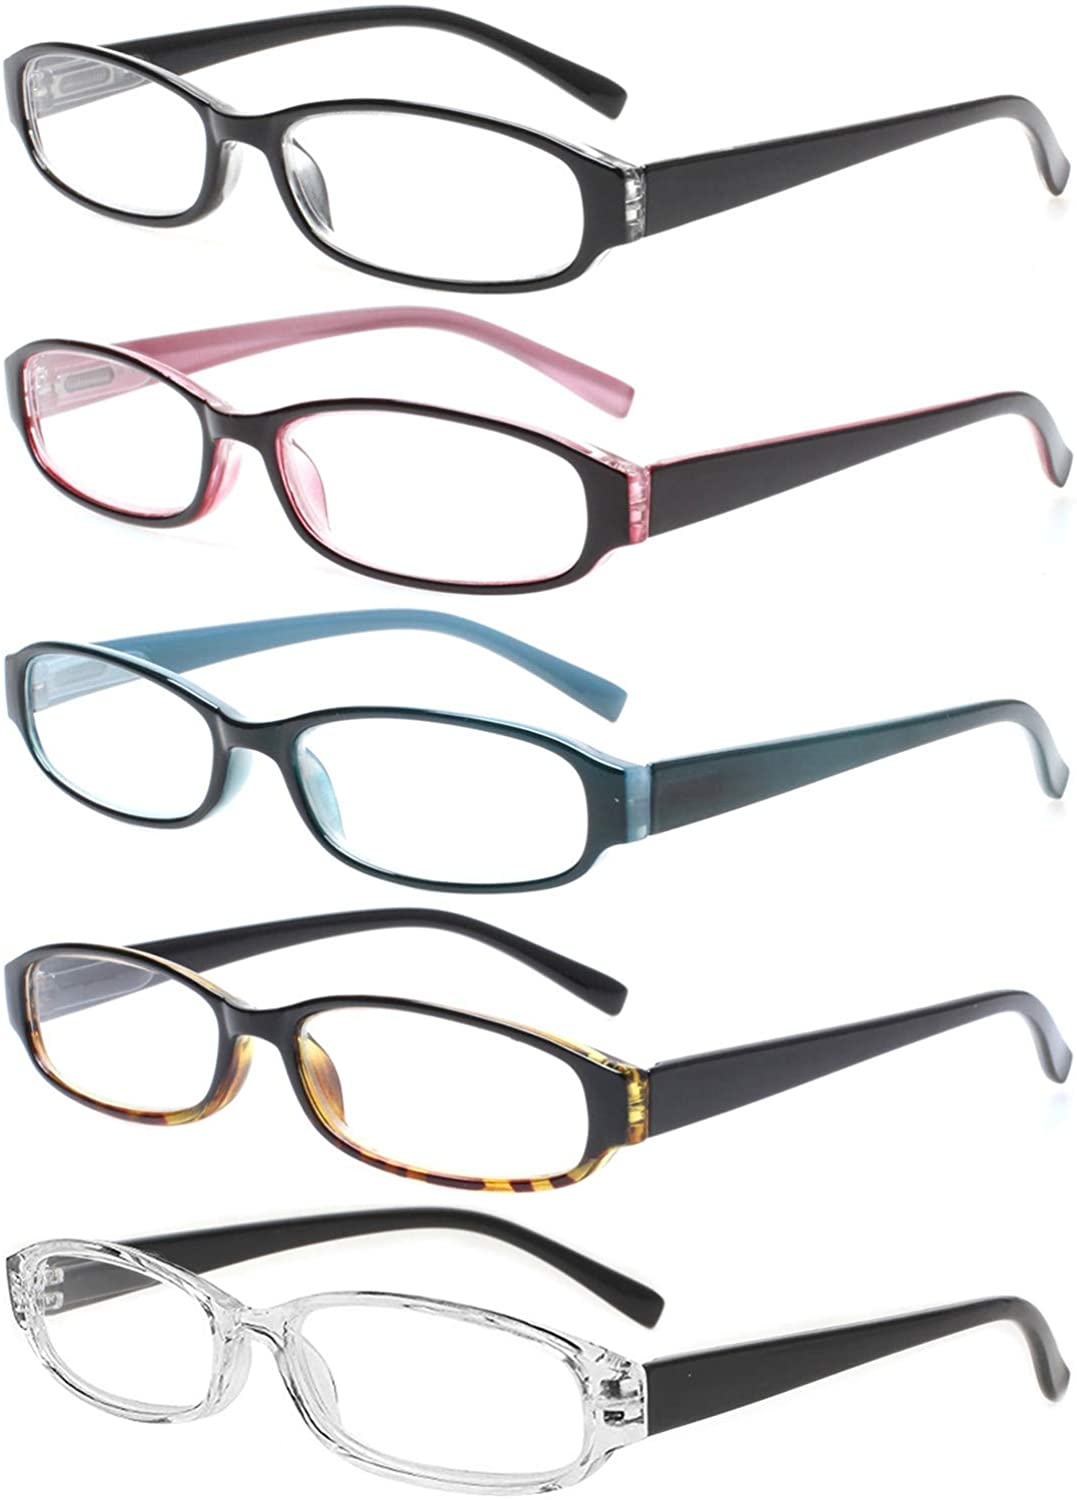 Reading Glasses 5 Pairs Spring Rea Max 48% OFF Quality Fashion Hinge Max 90% OFF Comfort